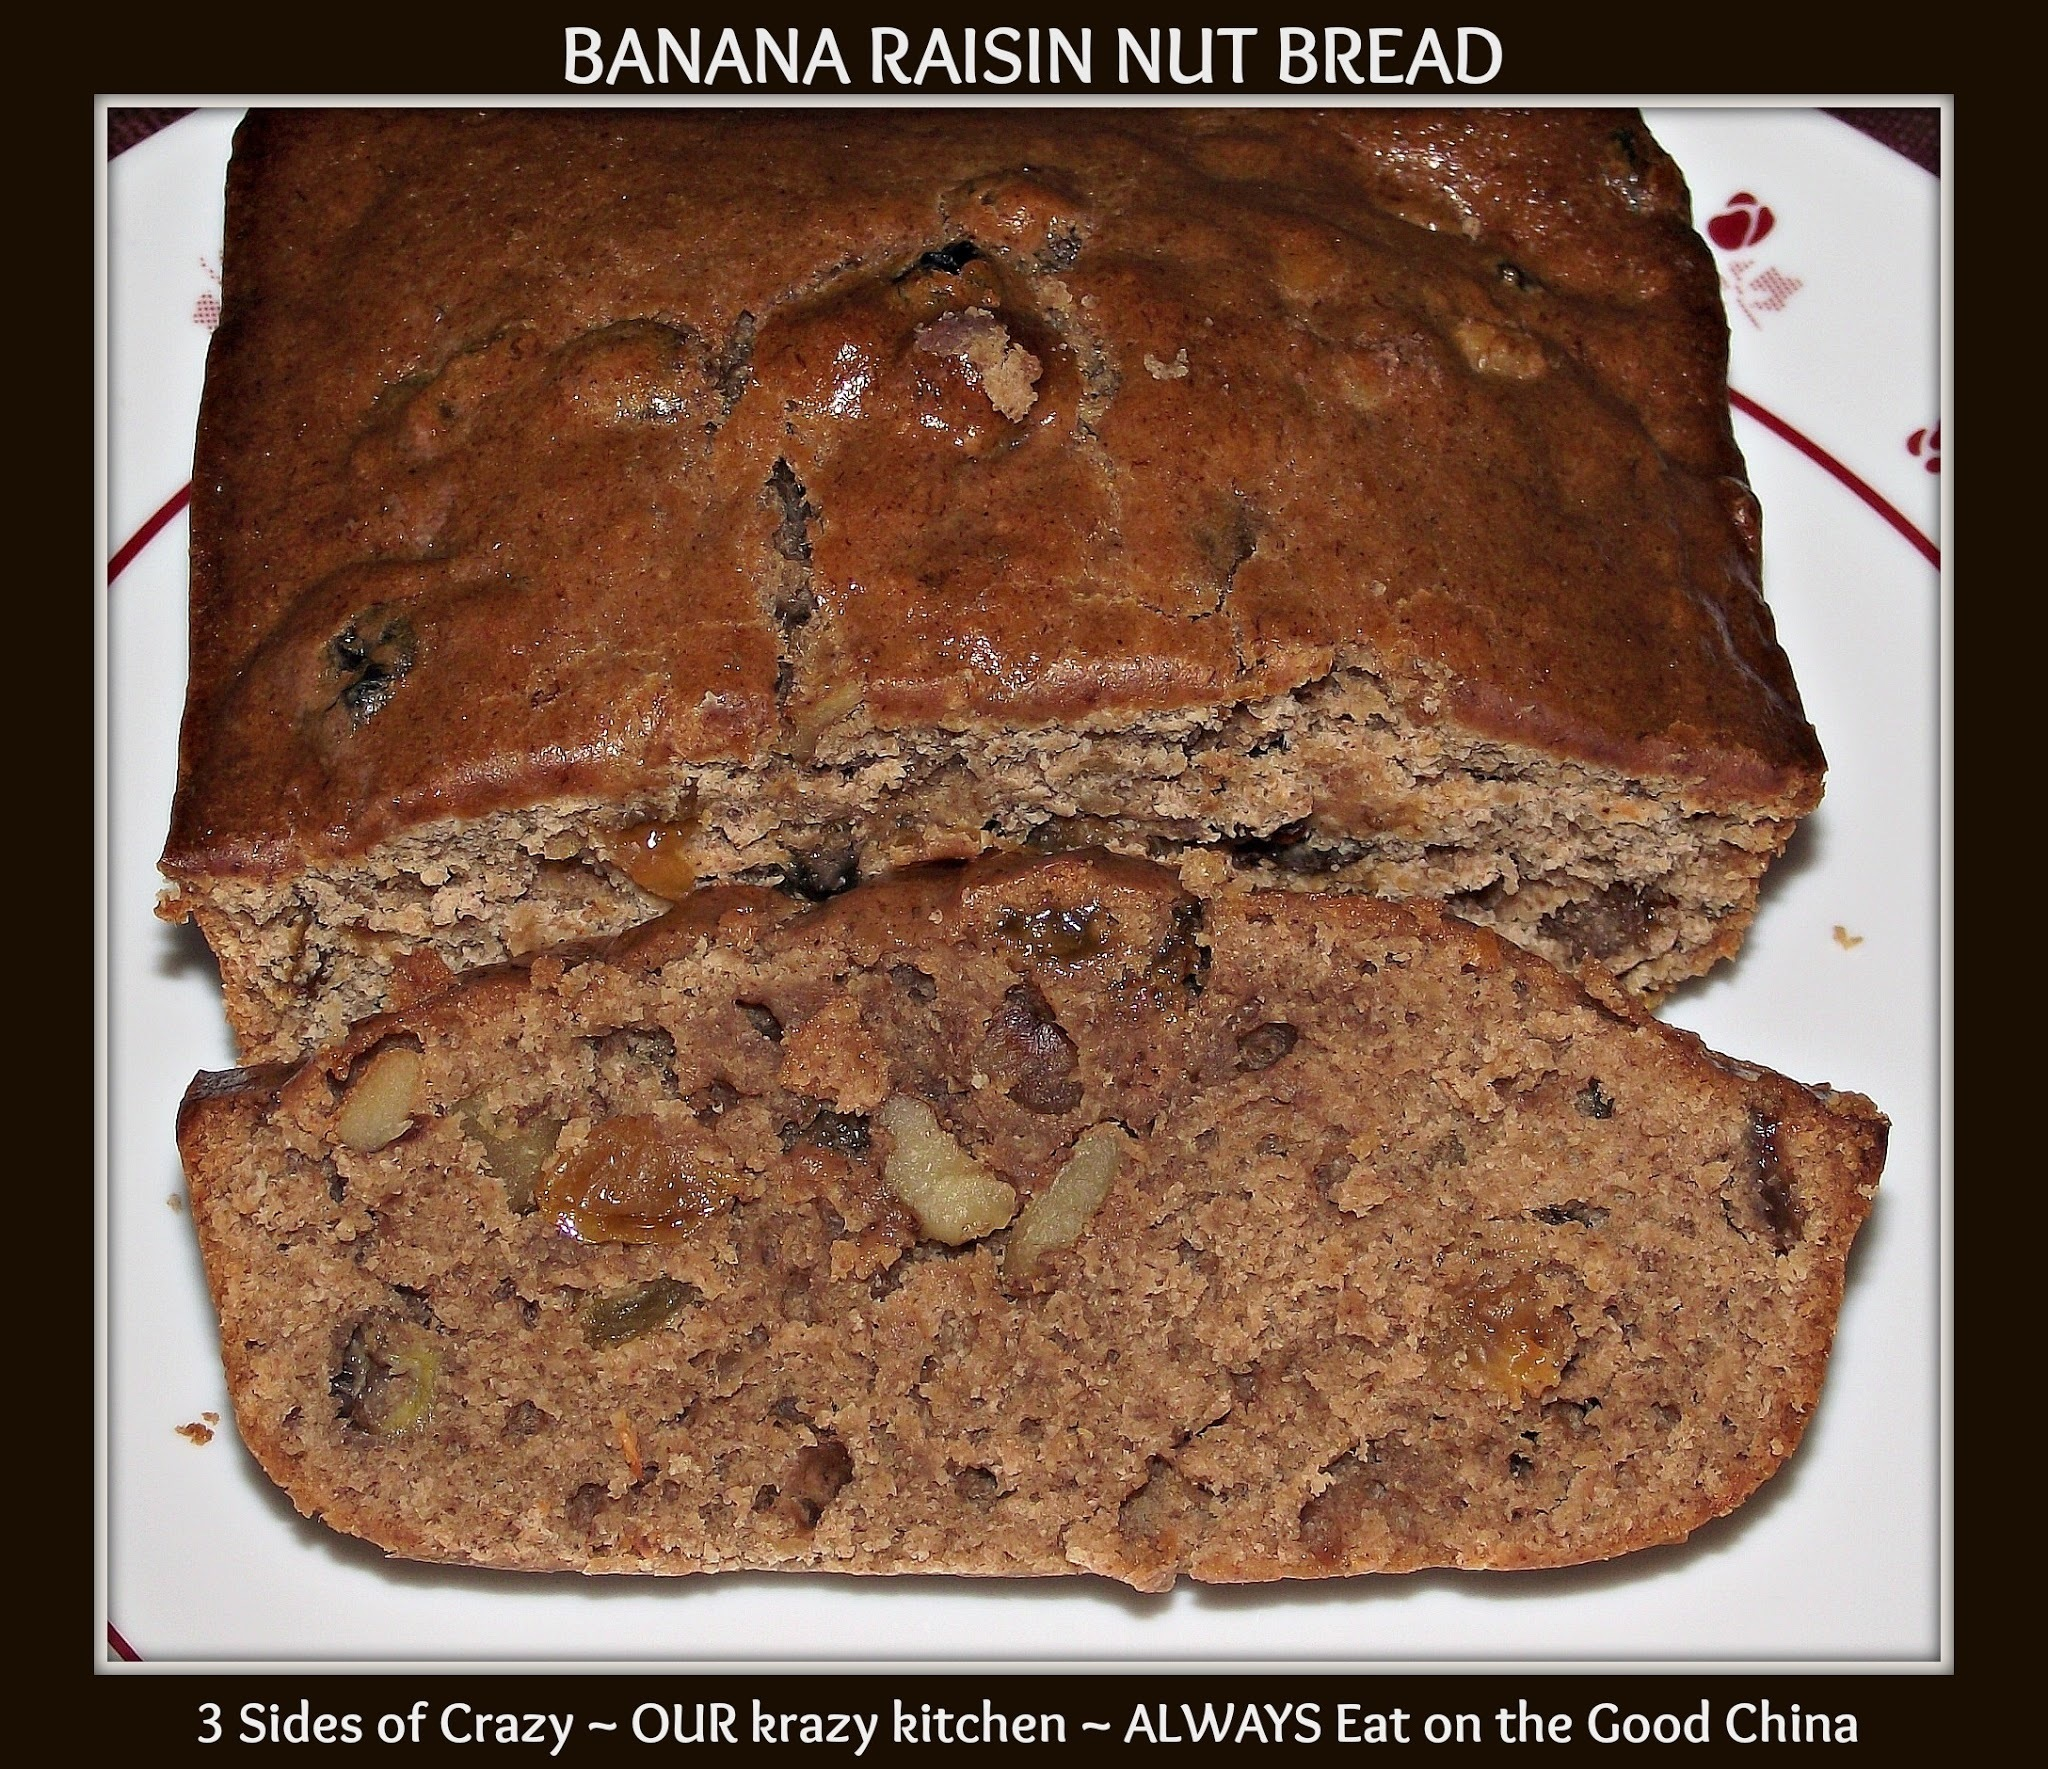 BANANA RAISIN NUT BREAD